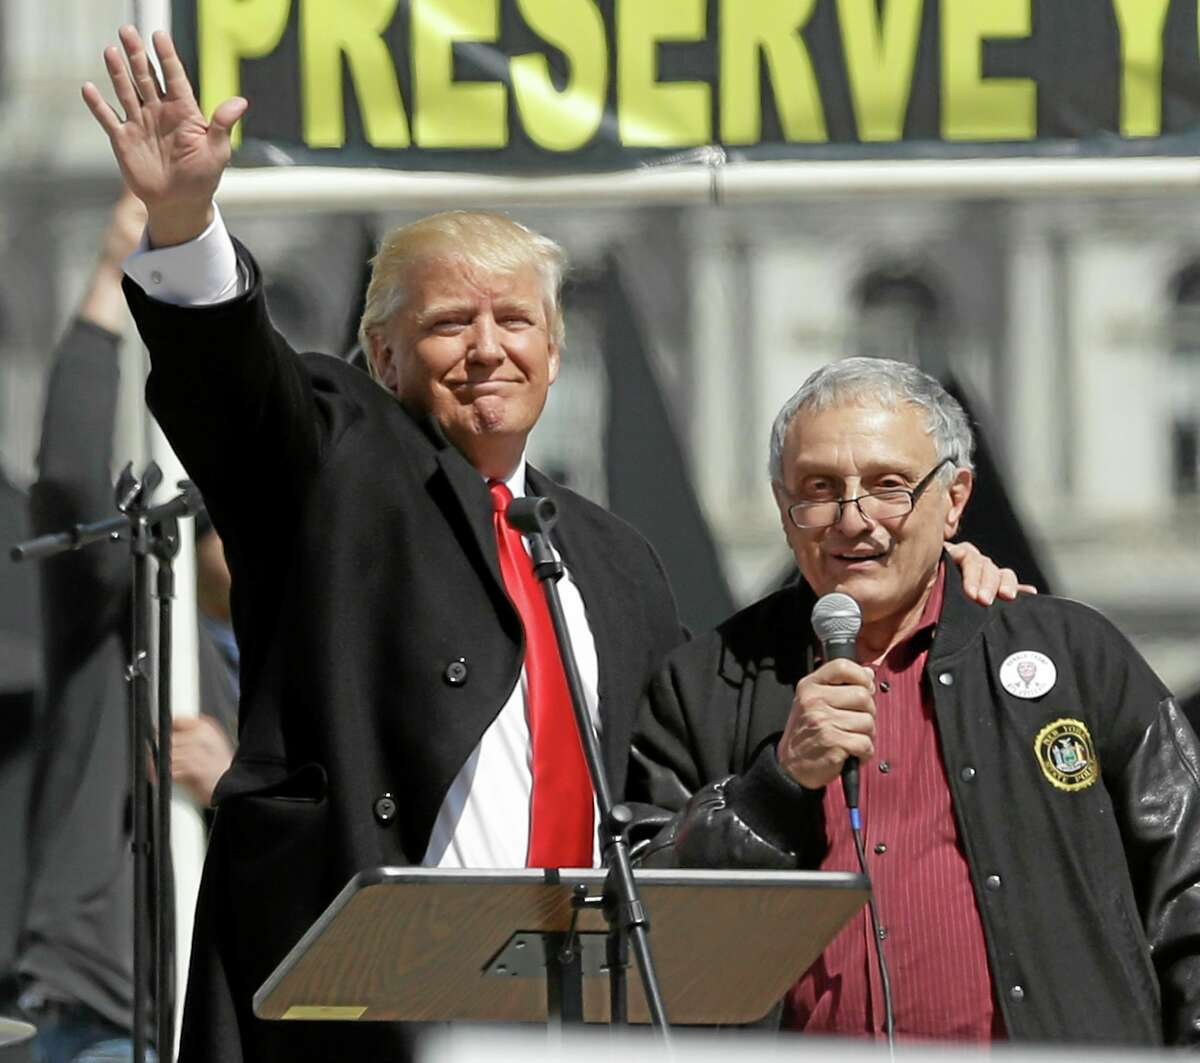 Donald Trump, left, and Carl Paladino, who ran for governor of New York as a Republican in 2010, speak during a gun rights rally at the Empire State Plaza on Tuesday, April 1, 2014, in Albany, Mike Groll — AP Photo